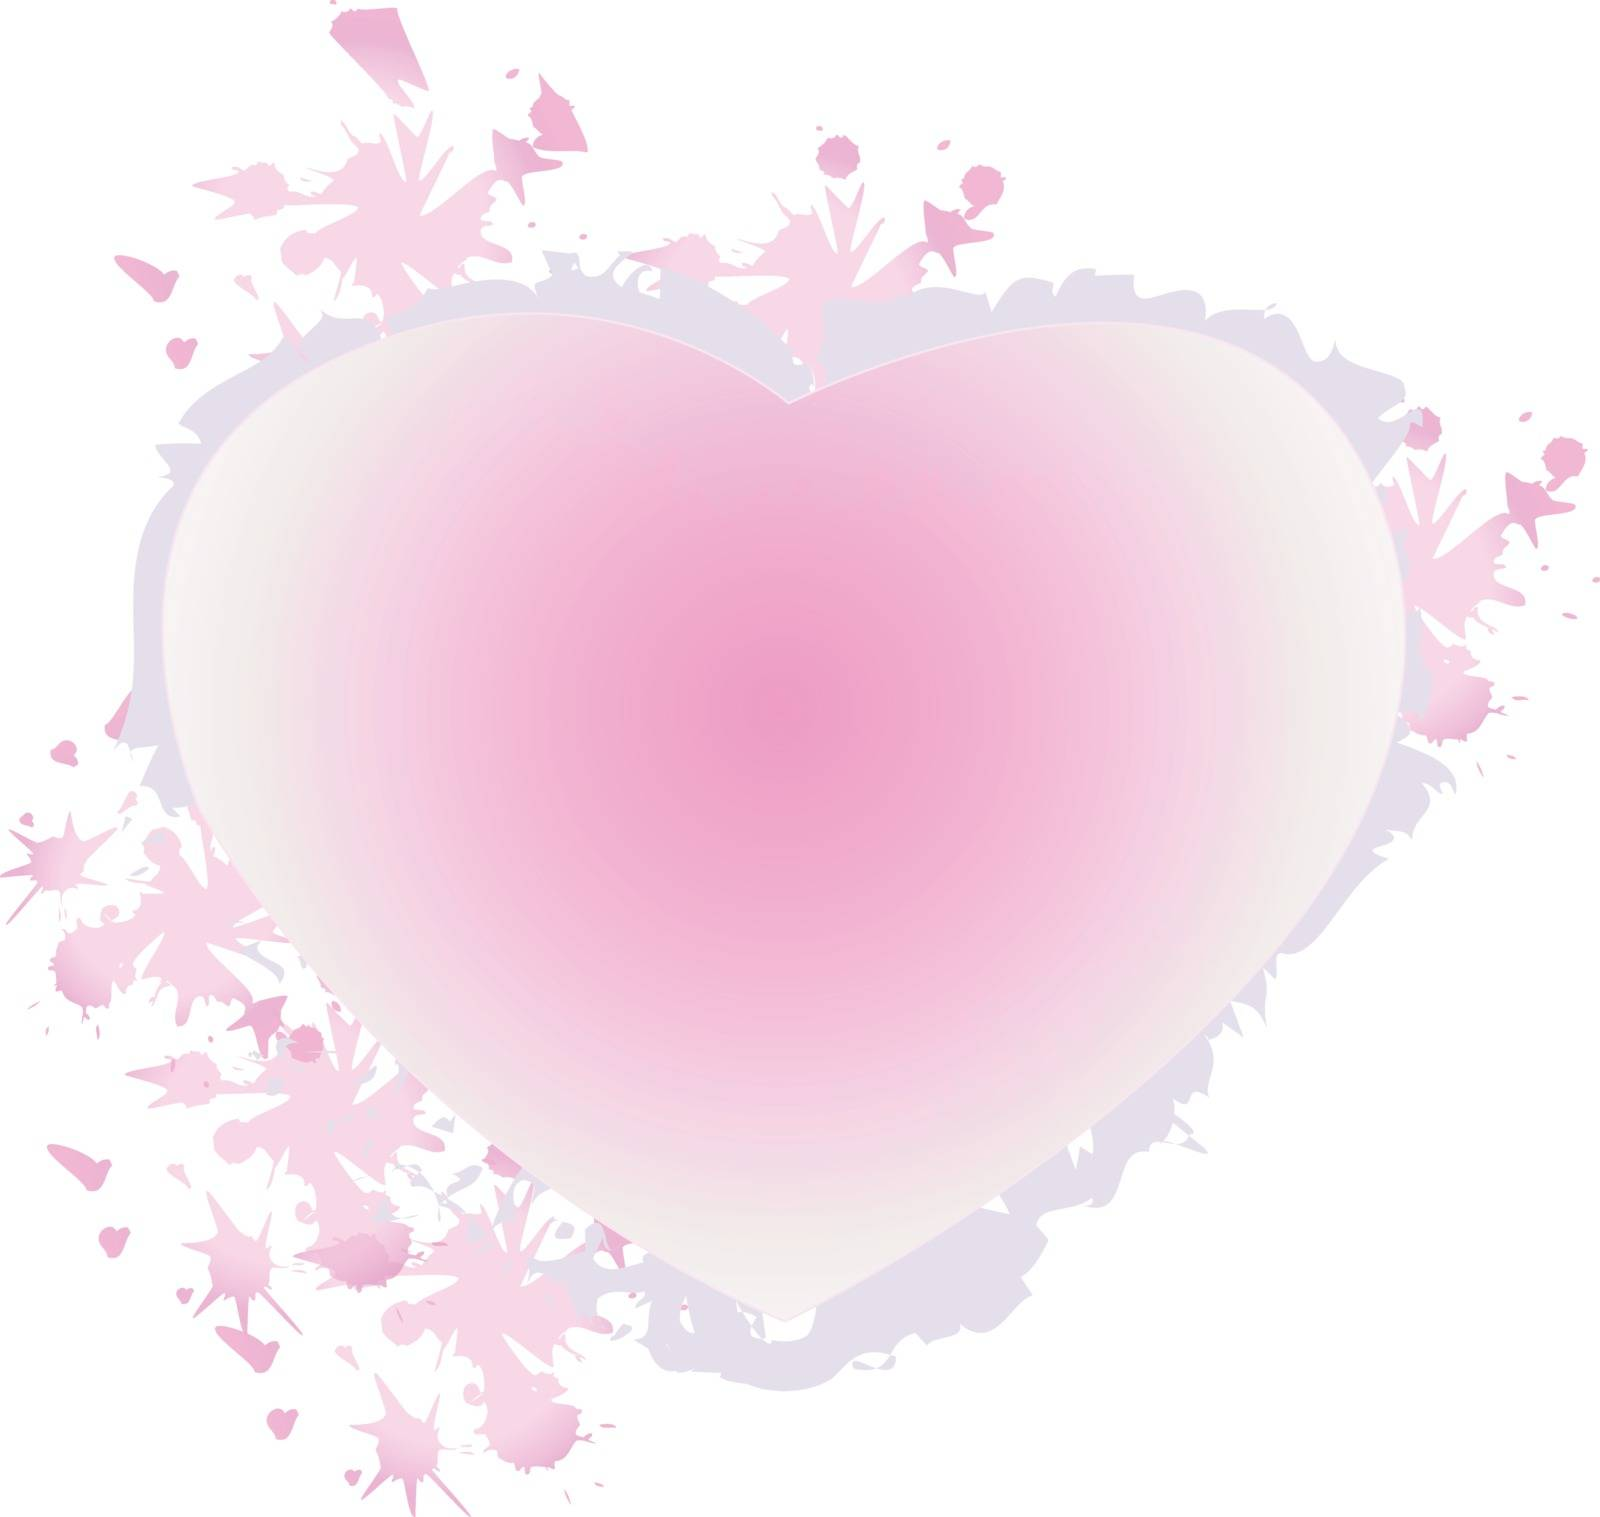 An illustration of a pink heart